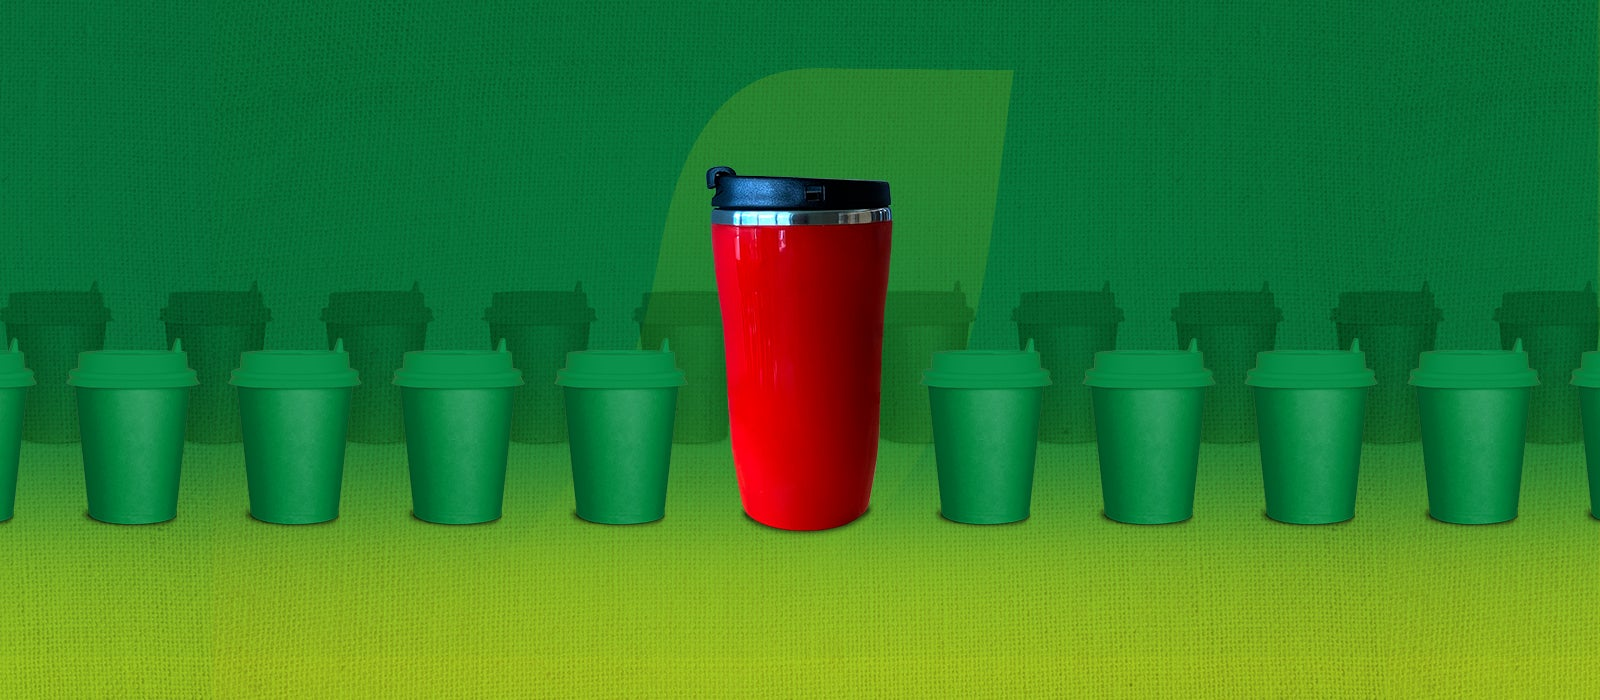 Cut the waste with reusable coffee cups